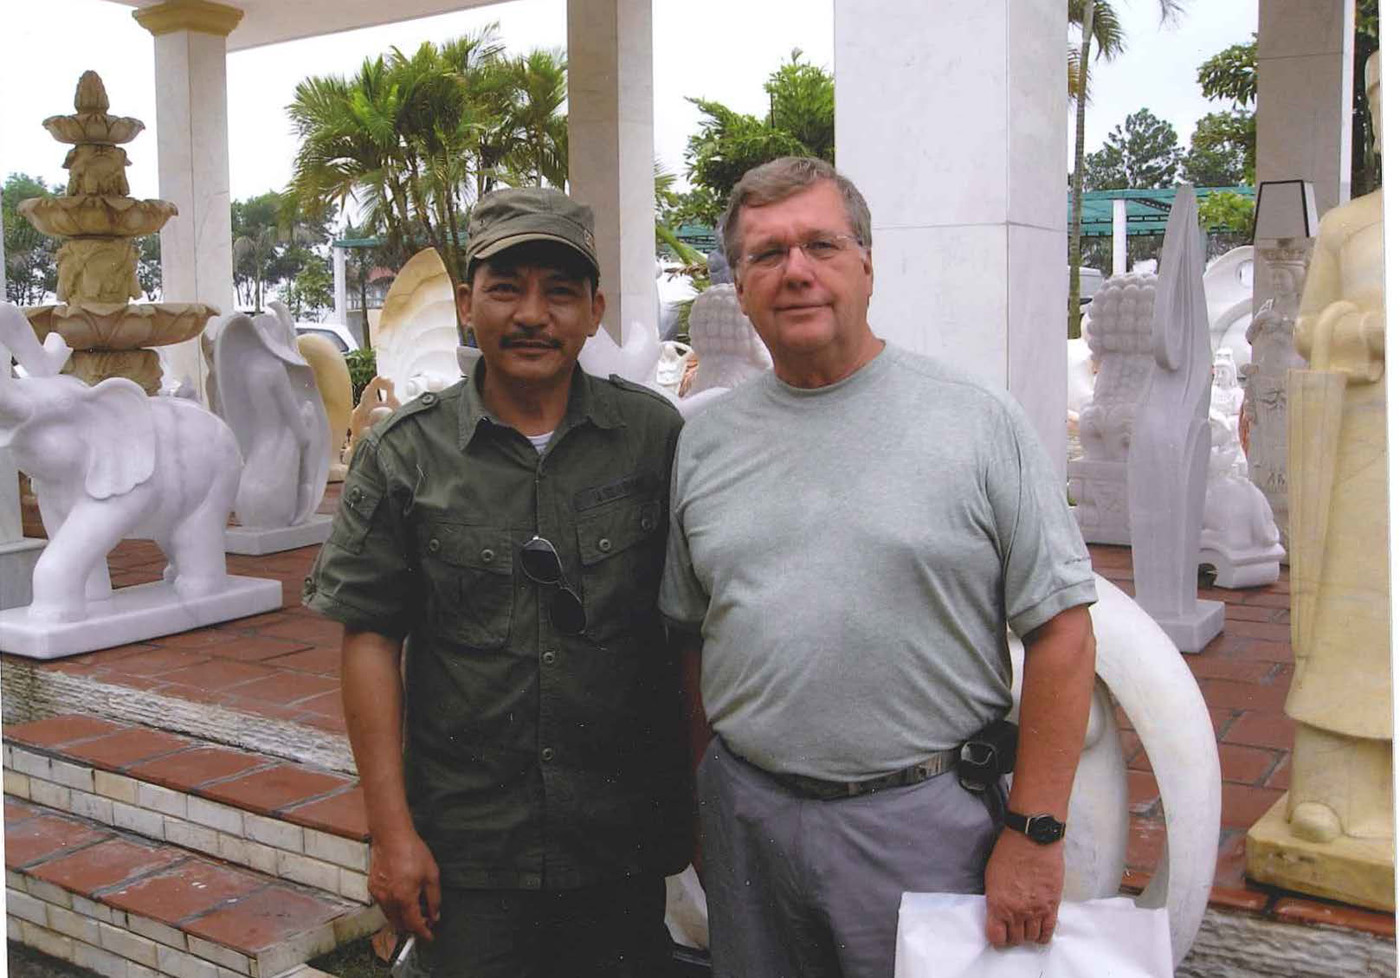 Author with former NVA soldier at tourist site near Phu Bia – photo taken in March 2013